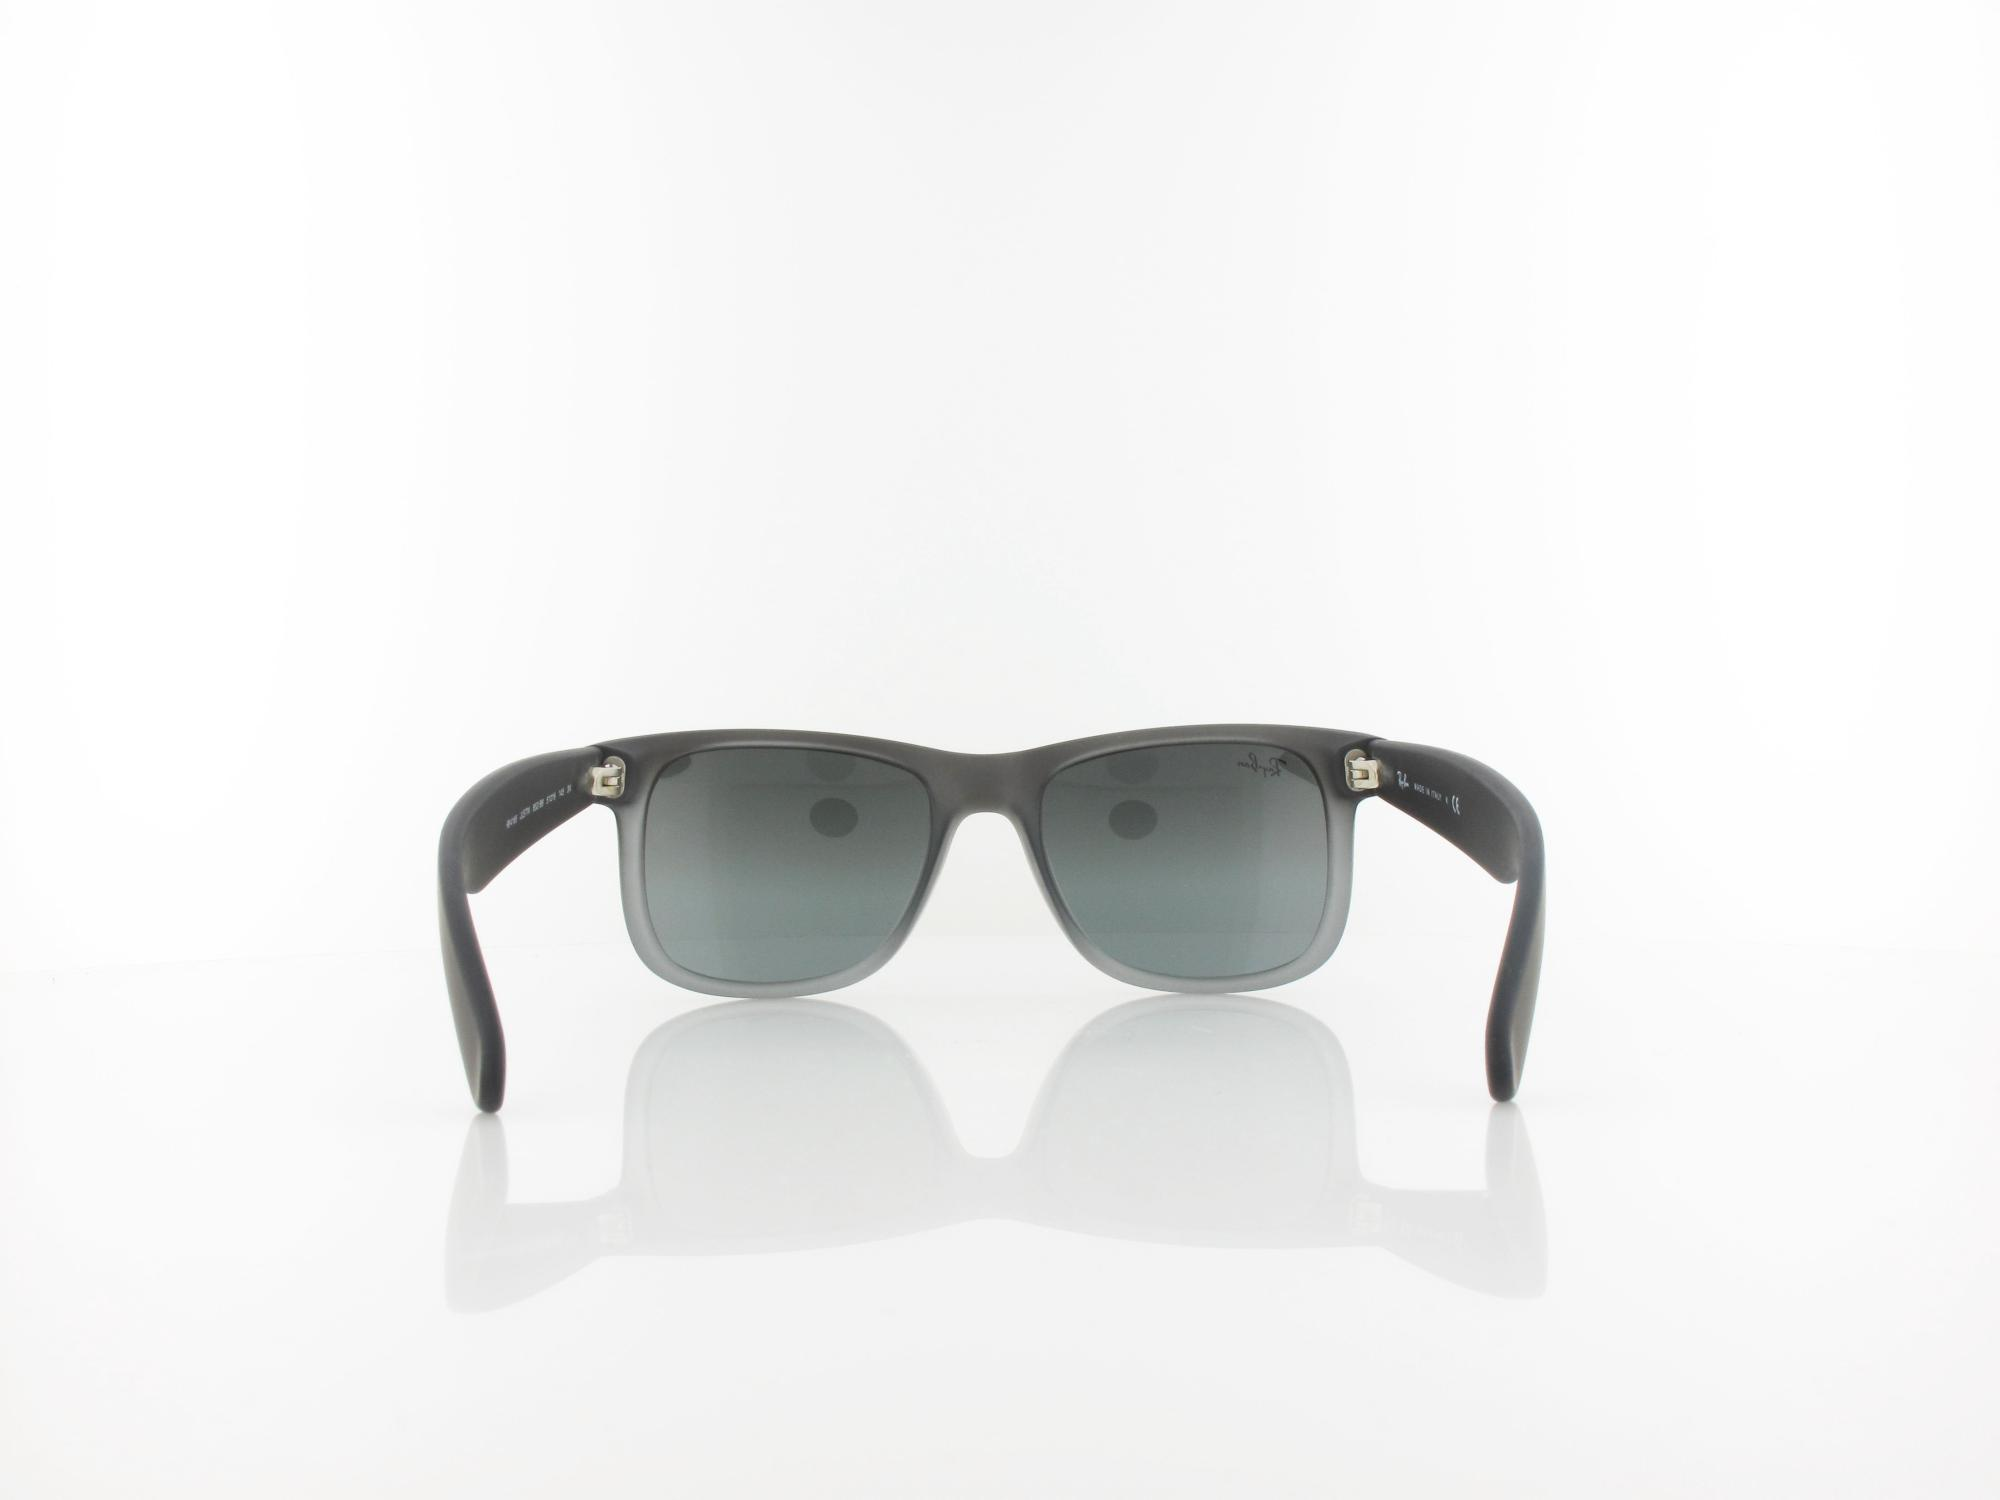 Ray Ban | Justin RB4165 852/88 51 | rubber grey transparent / grey silver mirror gradient